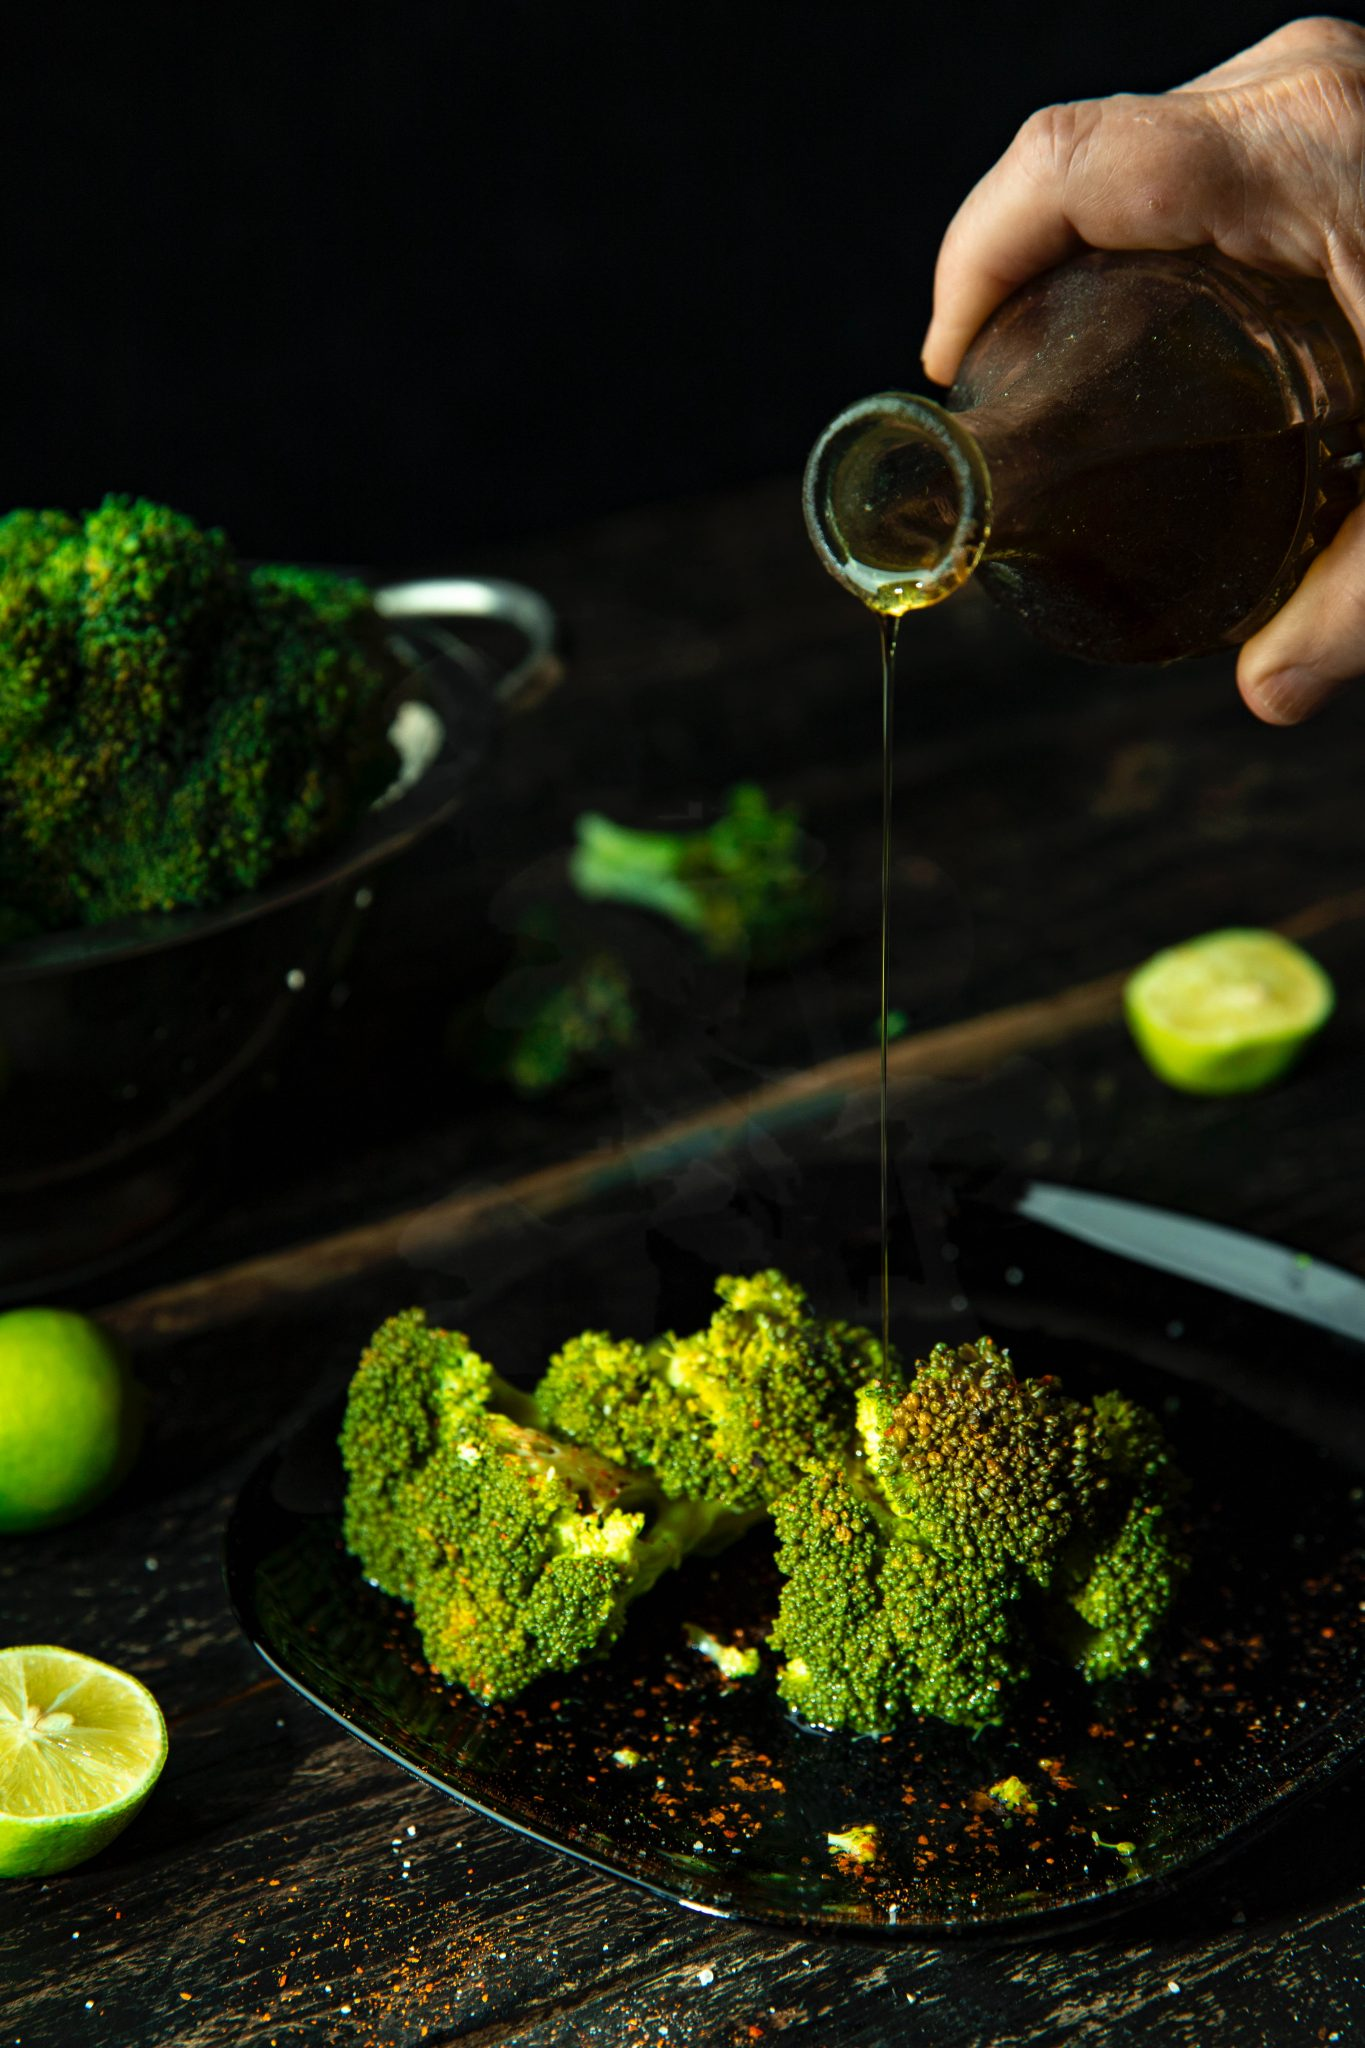 Oil being drizzled on broccoli